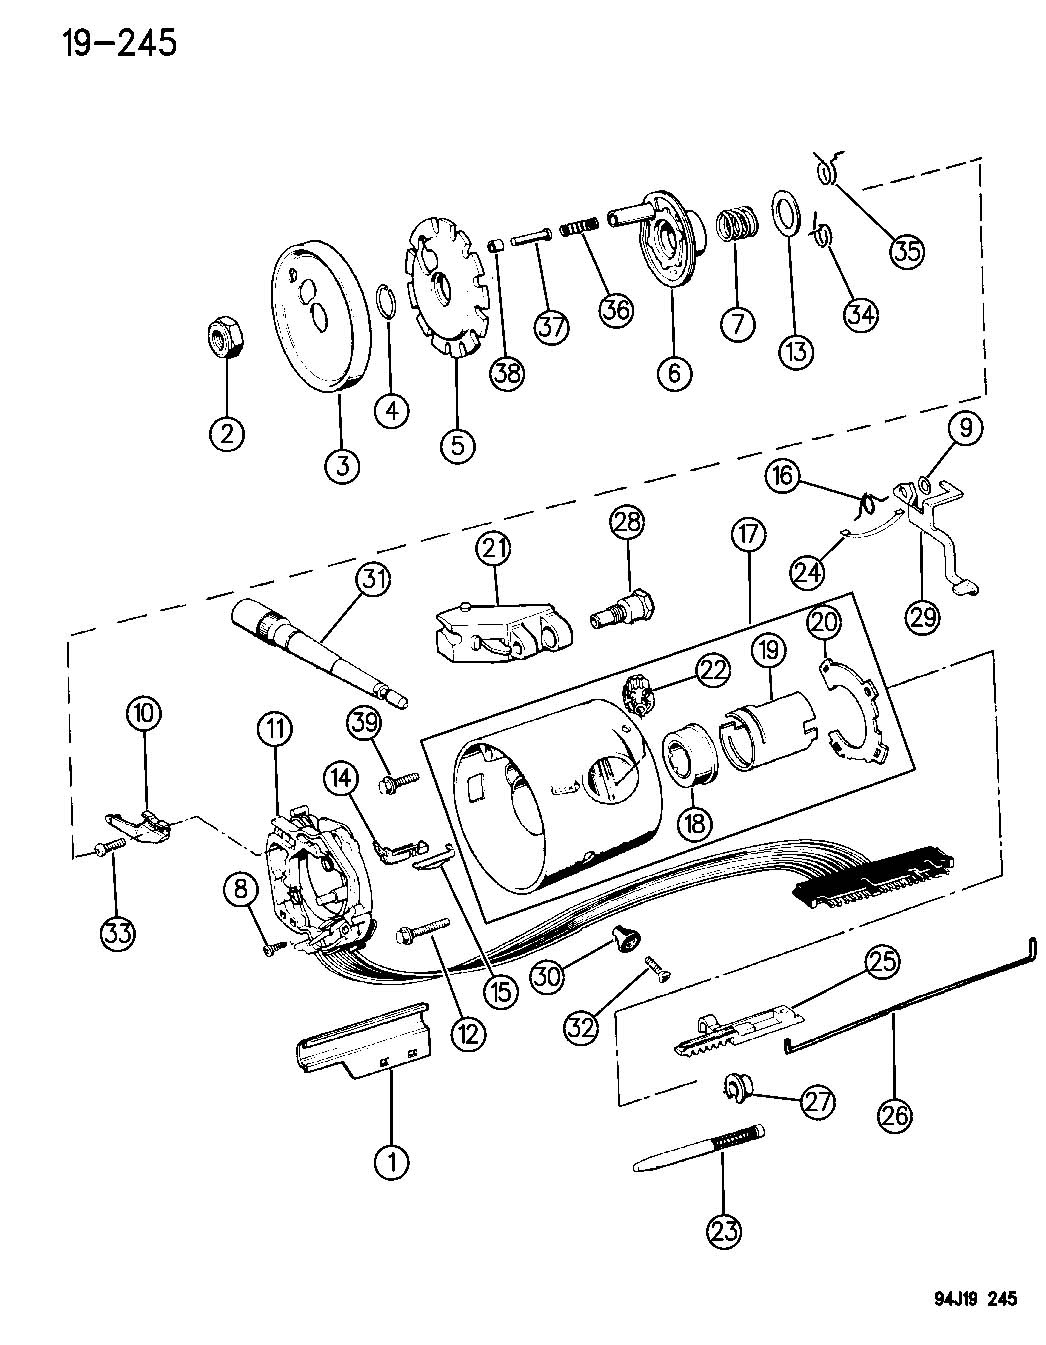 1986 chrysler steering column diagram